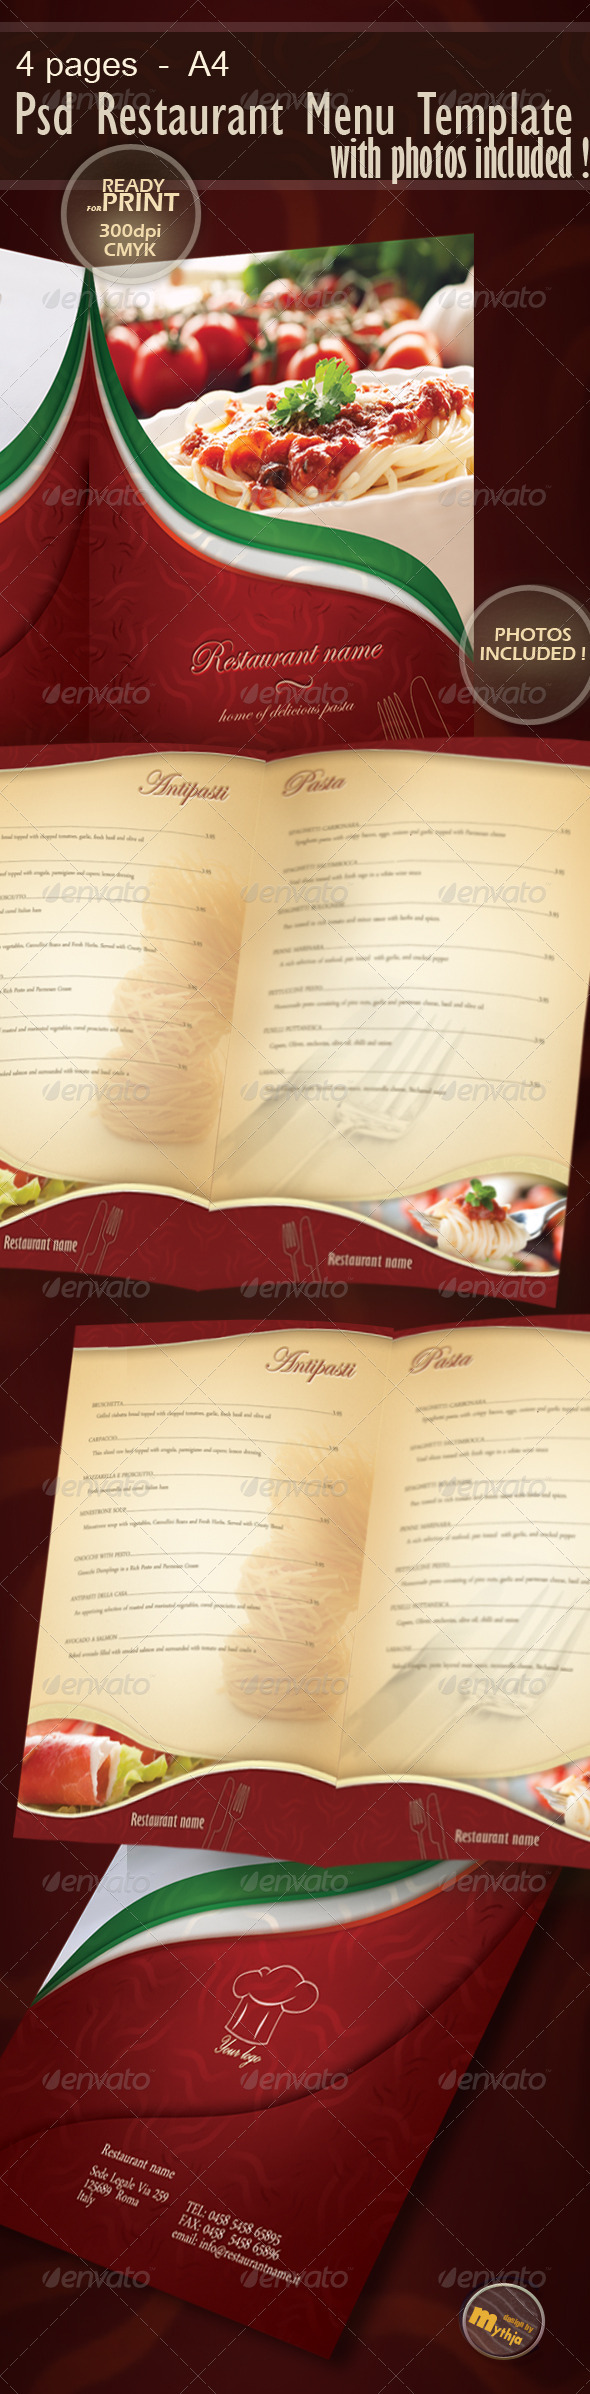 GraphicRiver Restaurant Menu template with photos incuded 1176350